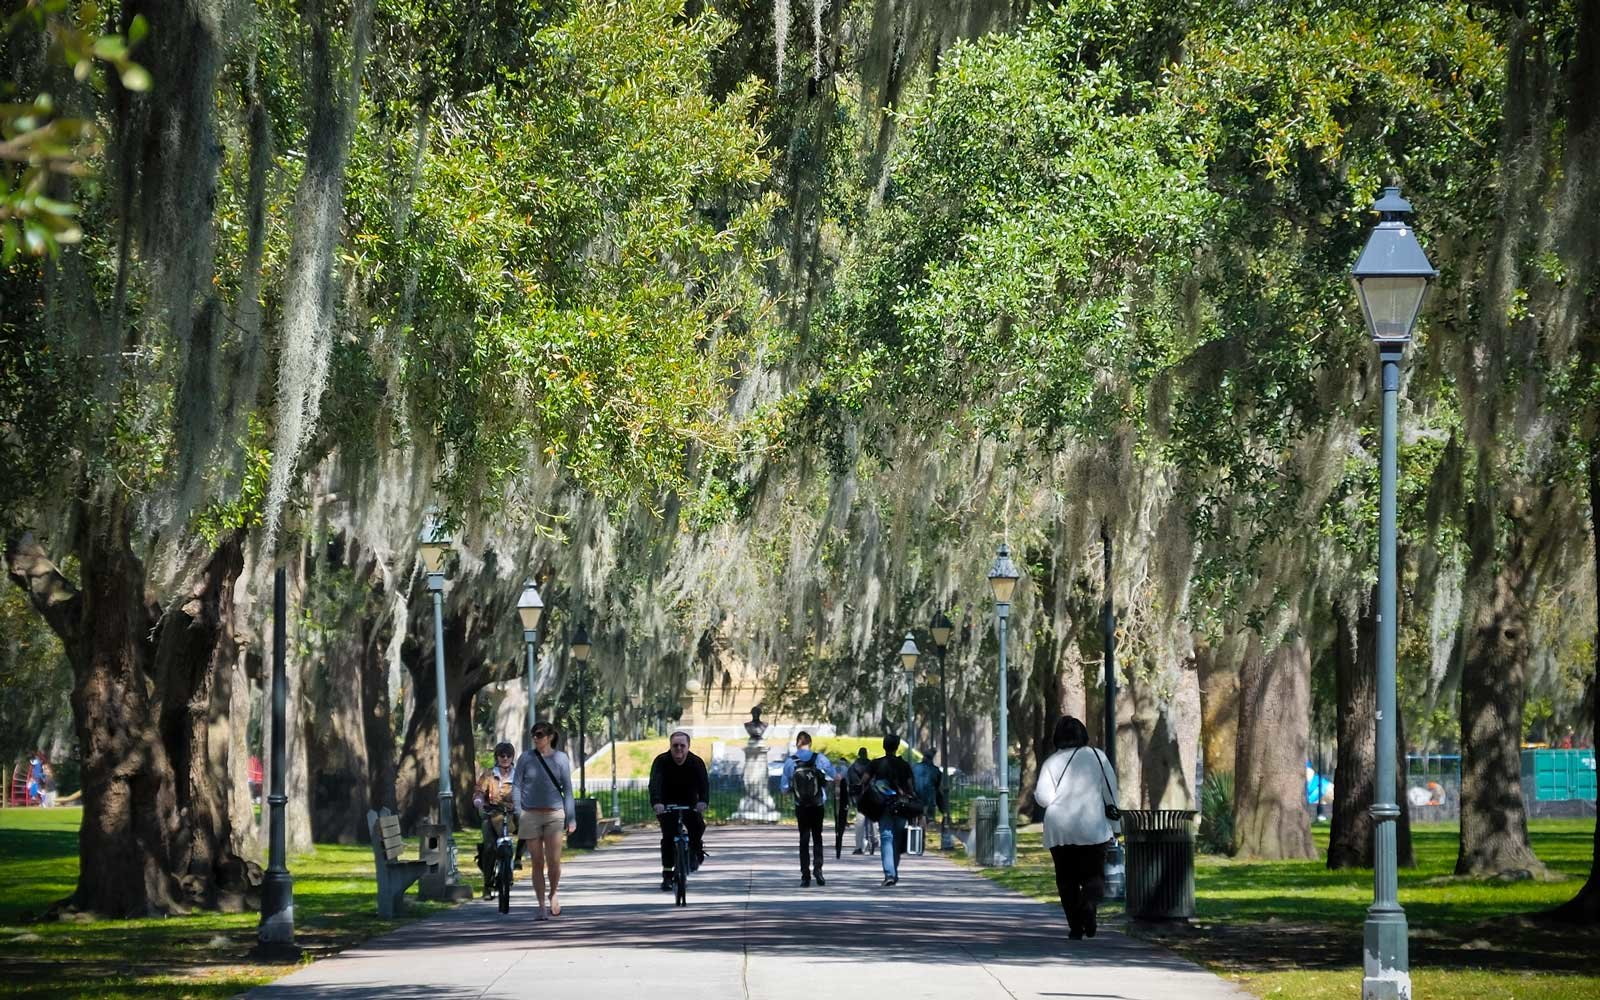 People walking in Forsythe Park, one of the many city parks in Savannah.